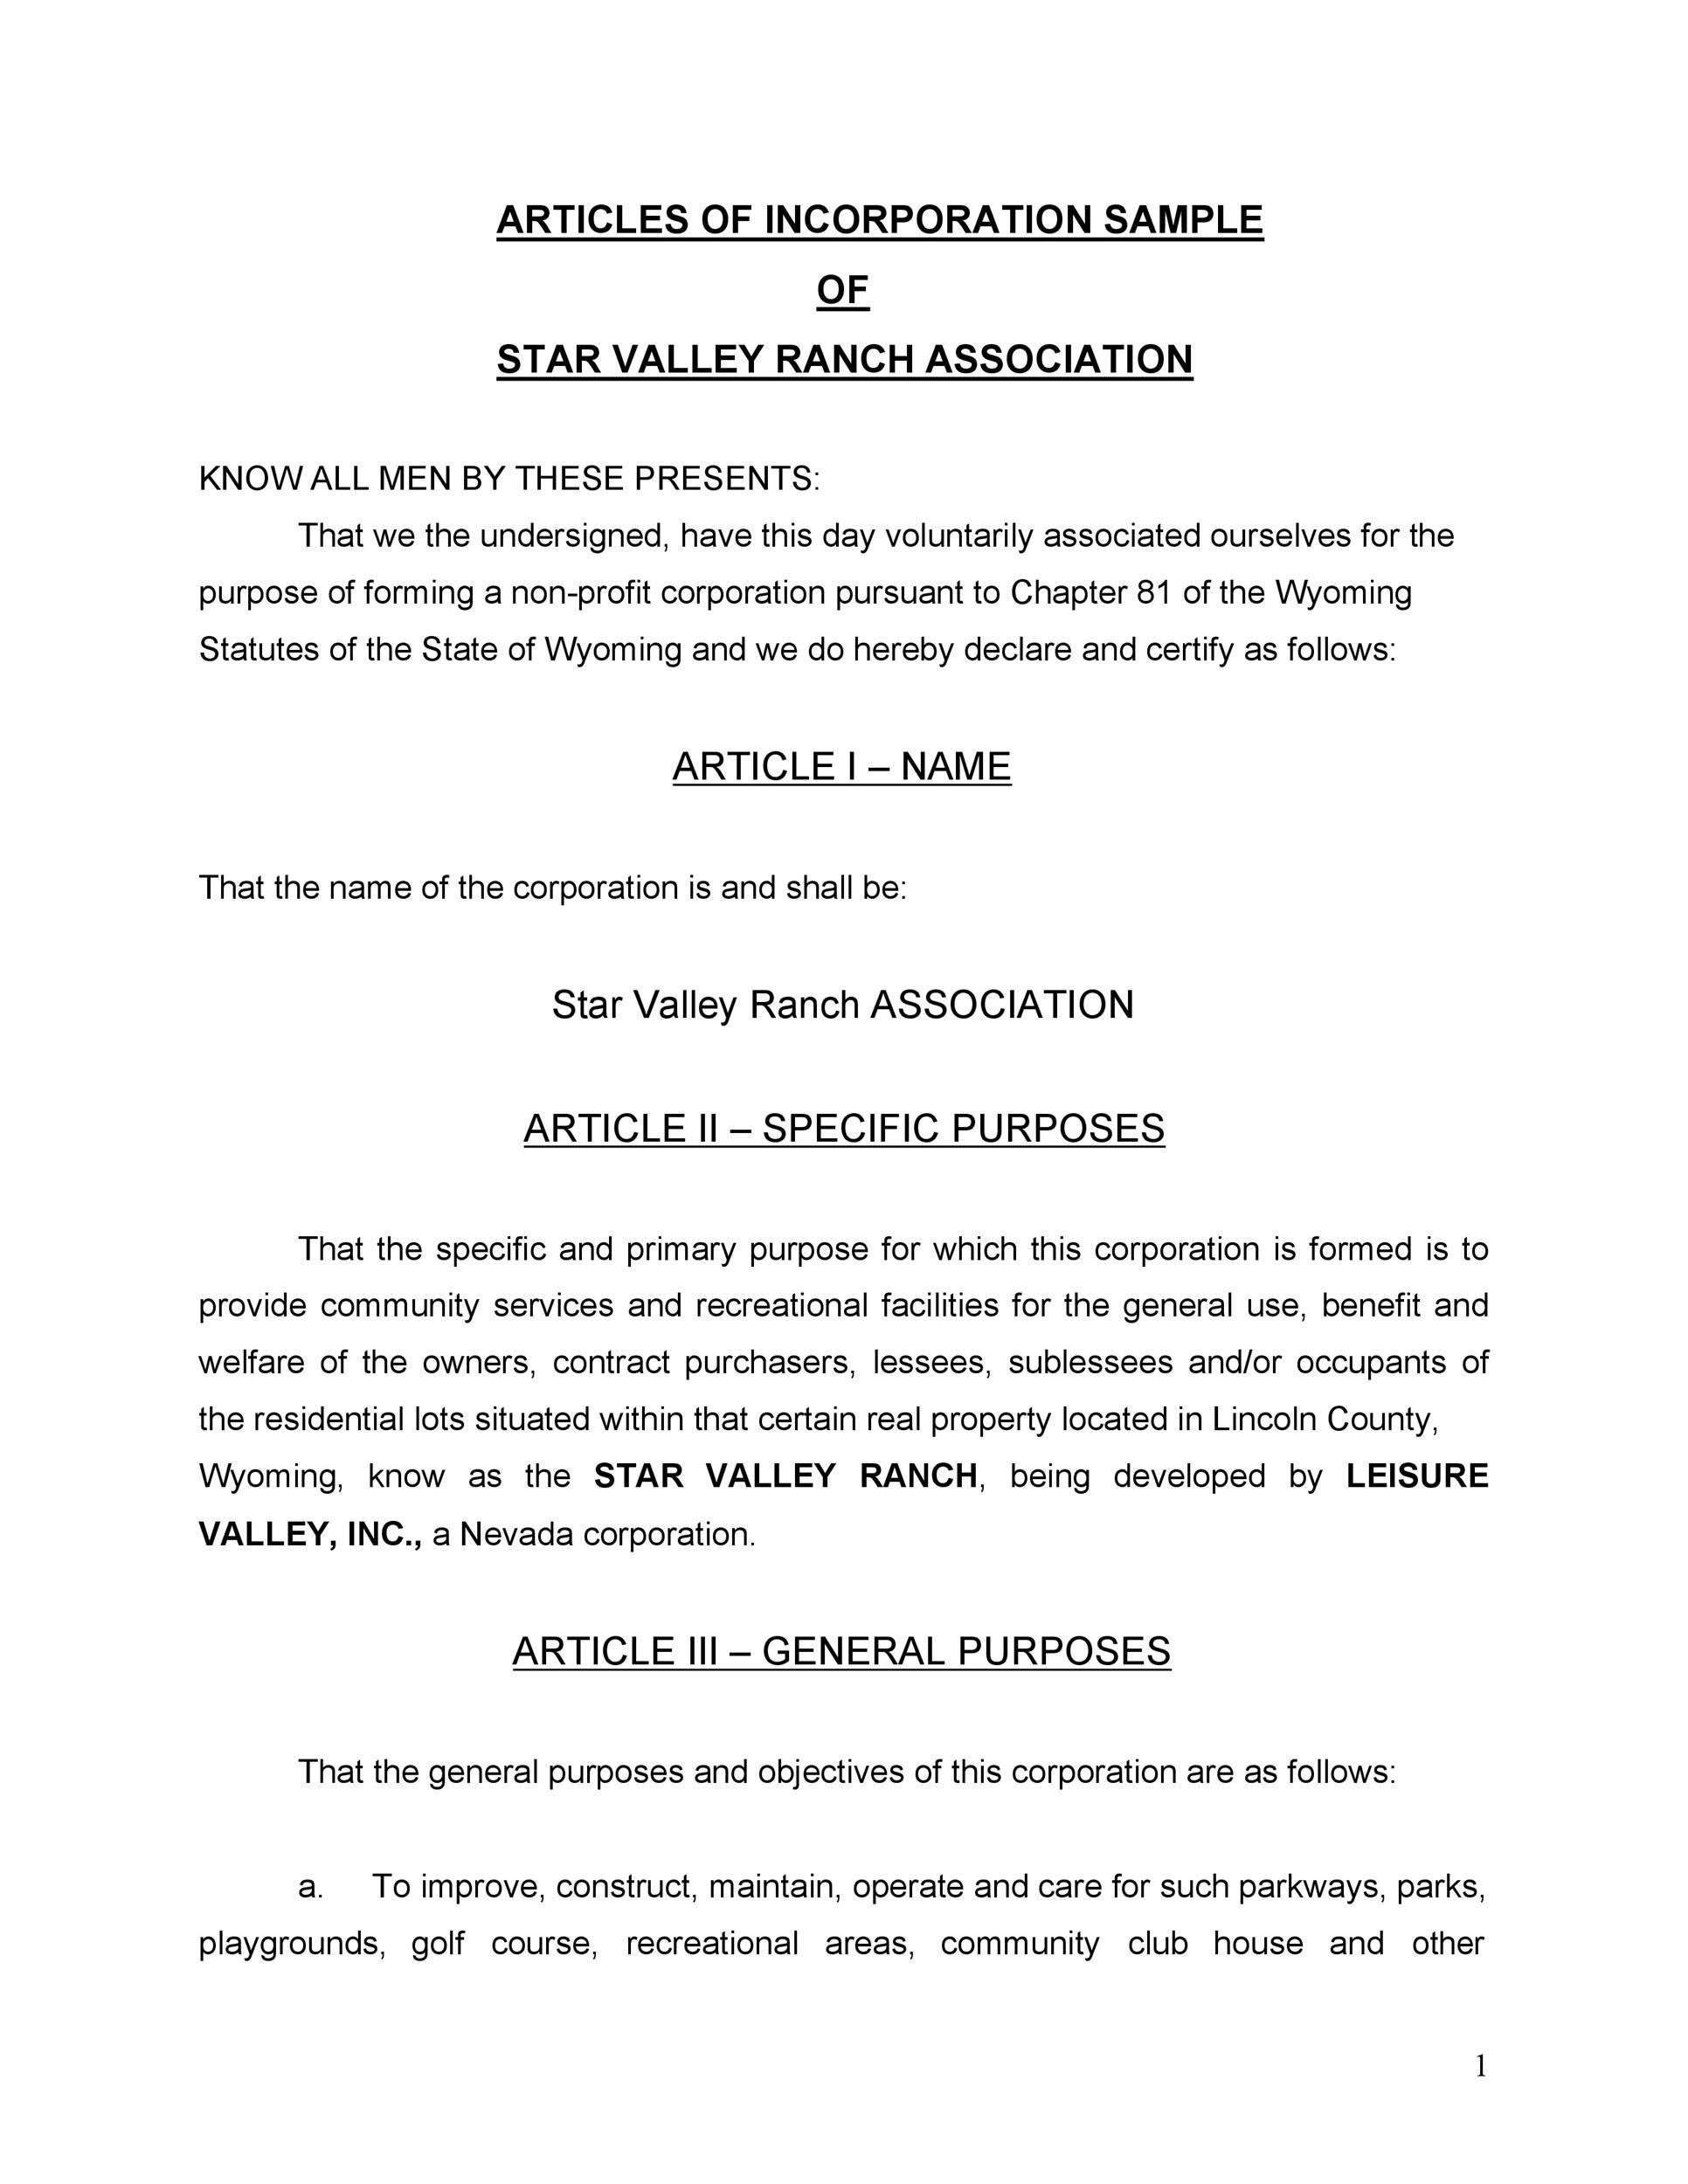 Free articles of incorporation template 37